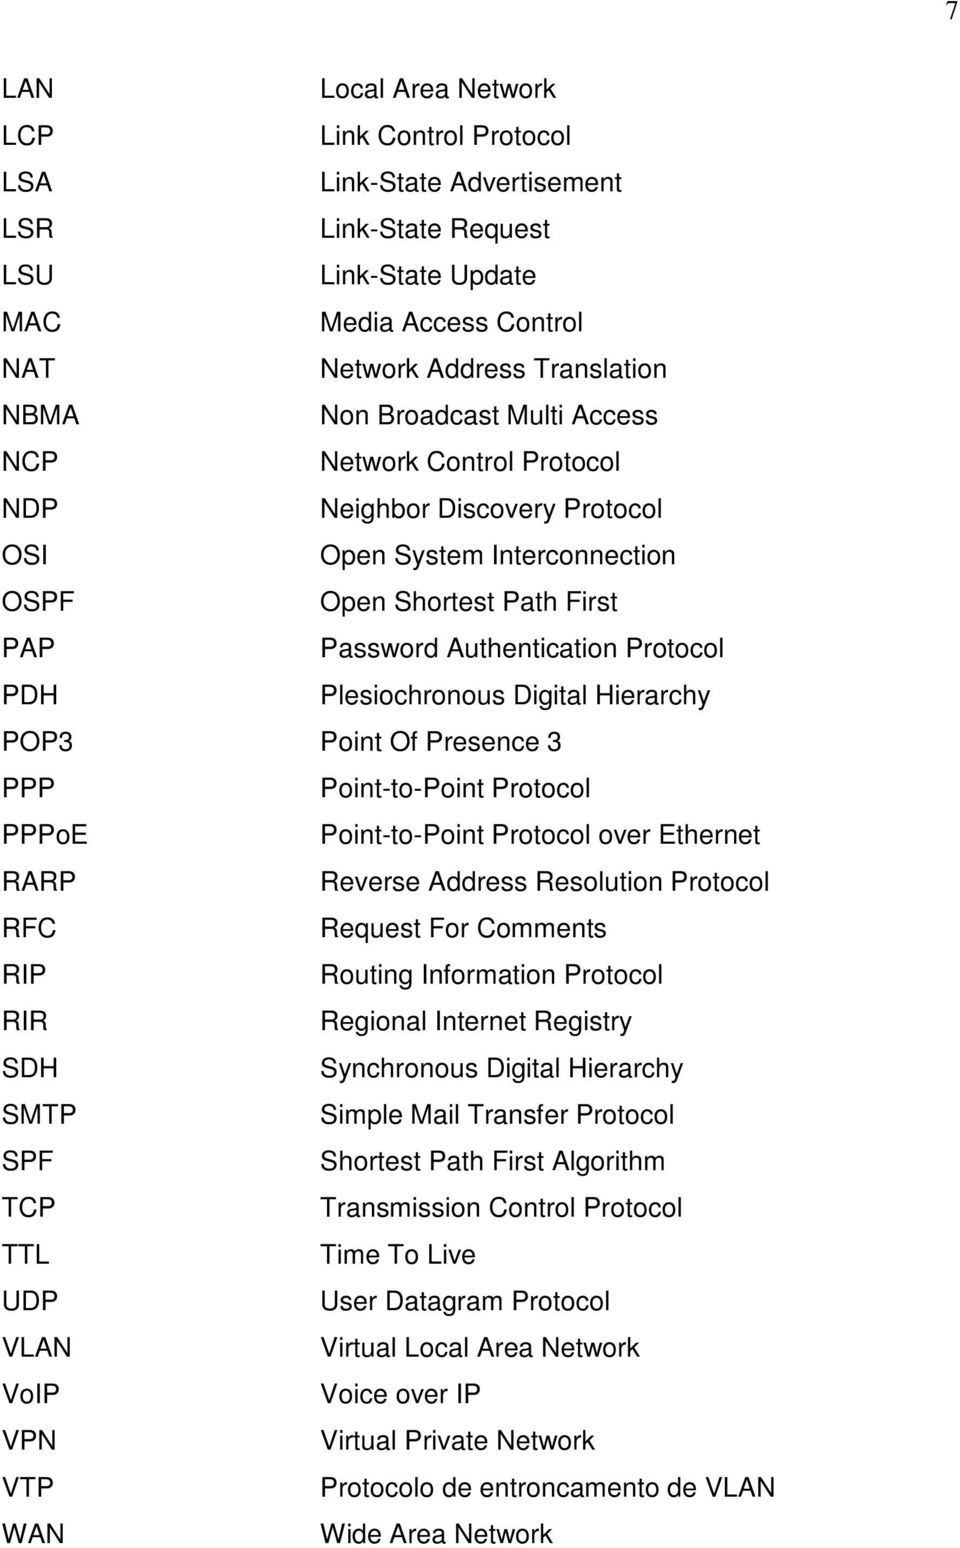 Plesiochronous Digital Hierarchy POP3 Point Of Presence 3 PPP Point-to-Point Protocol PPPoE Point-to-Point Protocol over Ethernet RARP Reverse Address Resolution Protocol RFC Request For Comments RIP